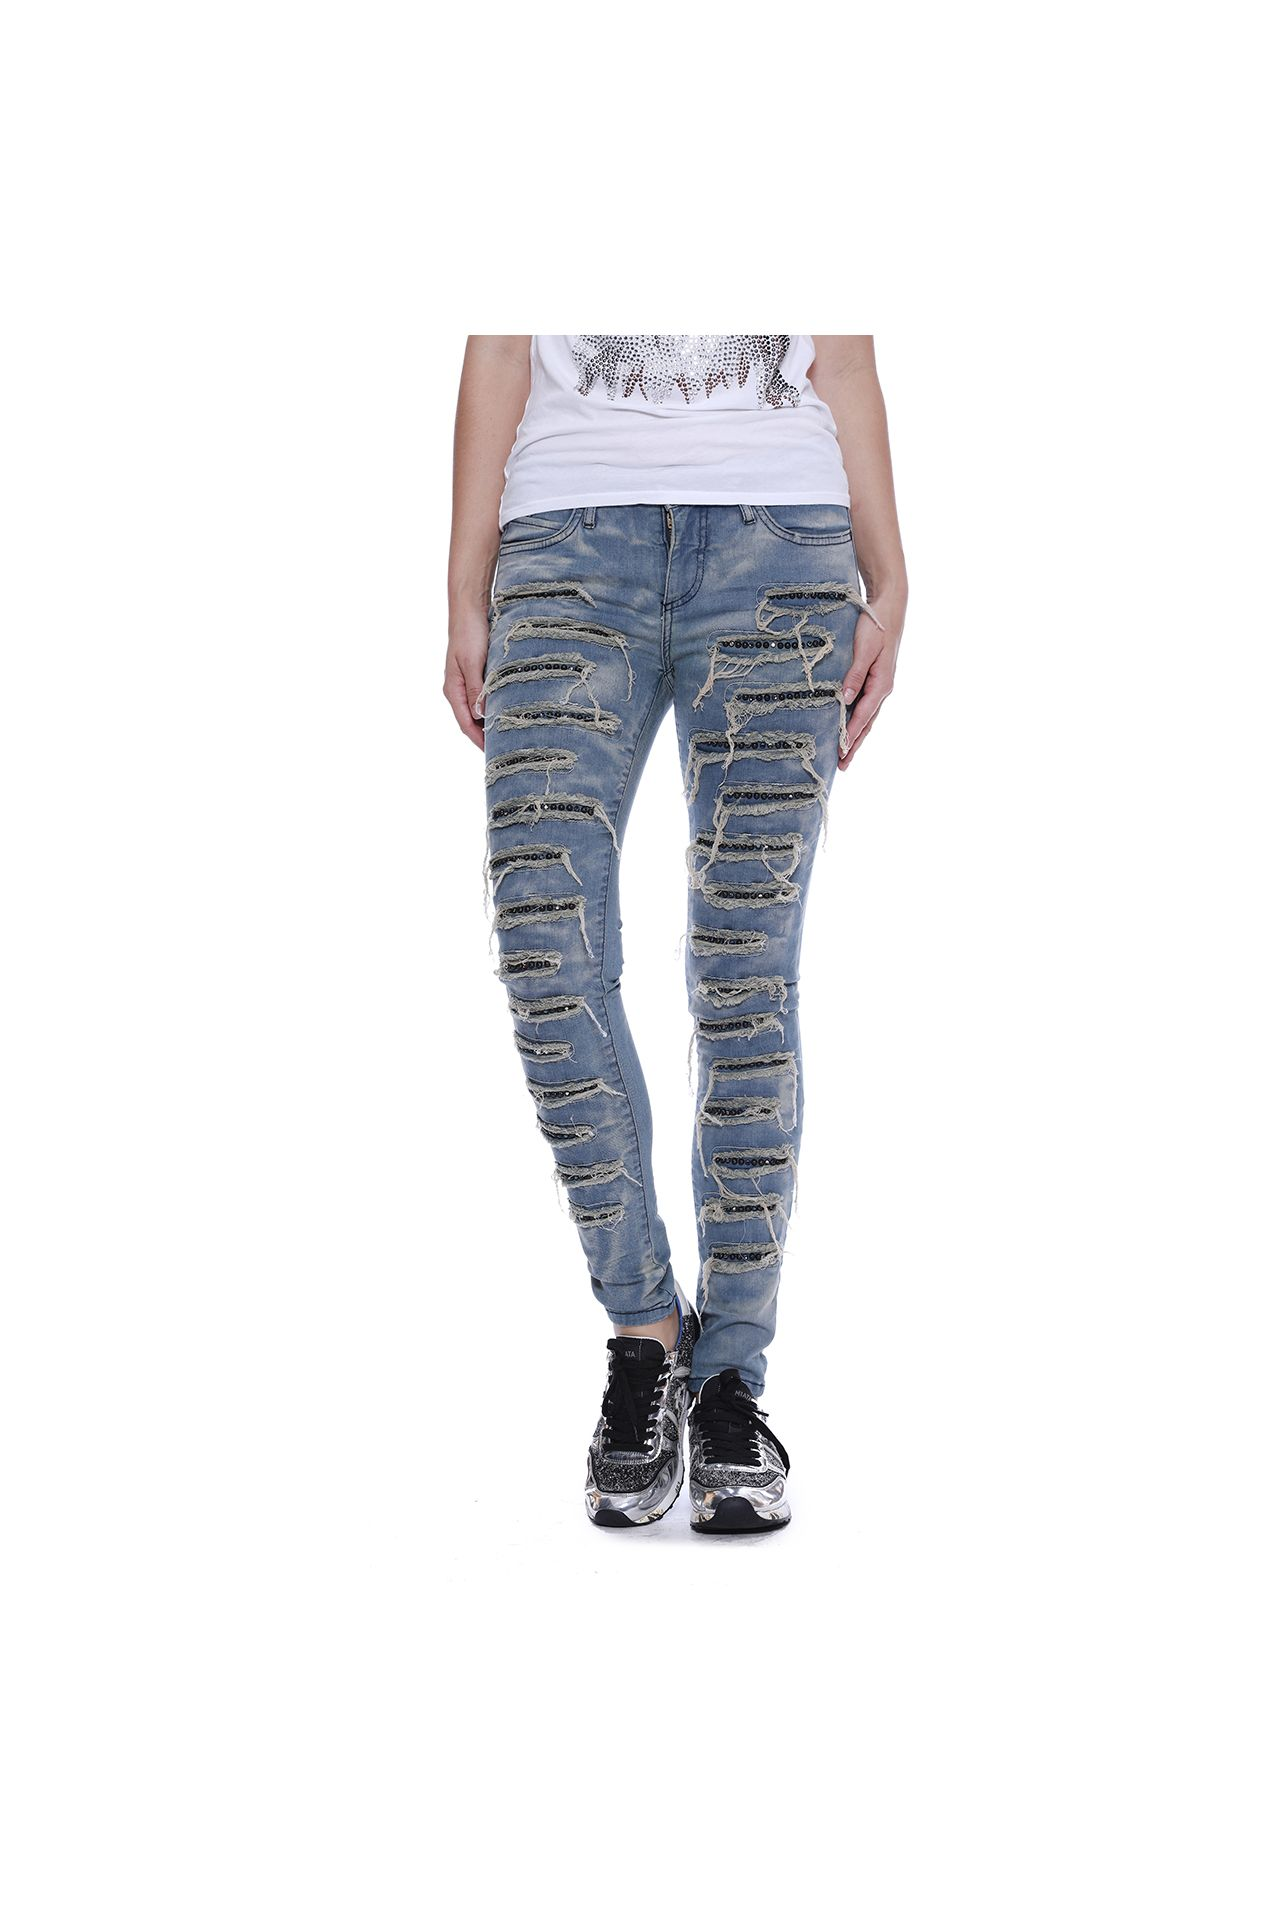 SKINNY JEANS IN BOSTON W/ MONTANA & BLACK DIAMOND STUDS